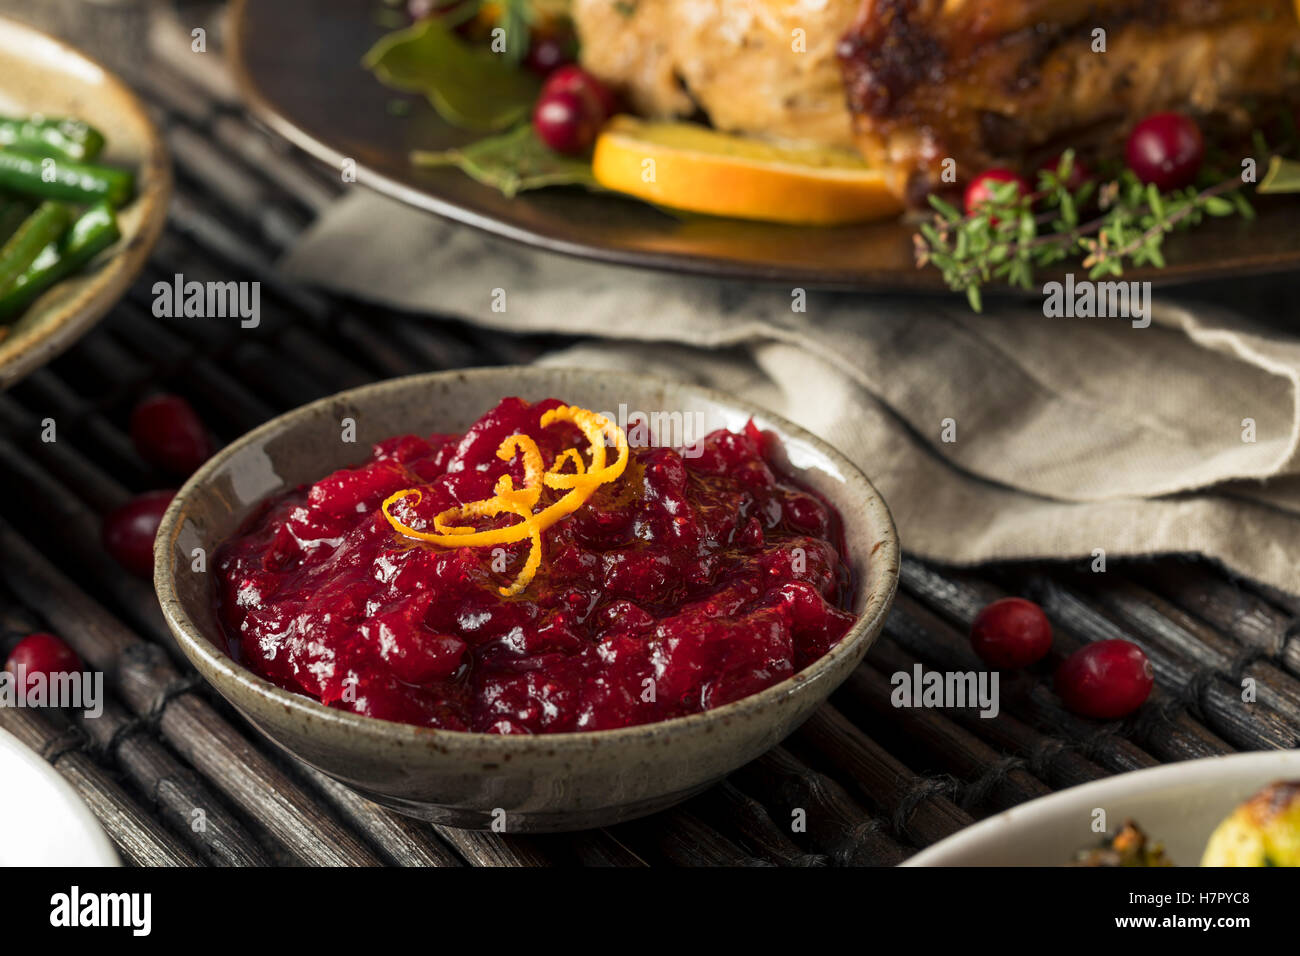 Homemade Thanksgiving Cranberry Sauce with Orange Zest - Stock Image